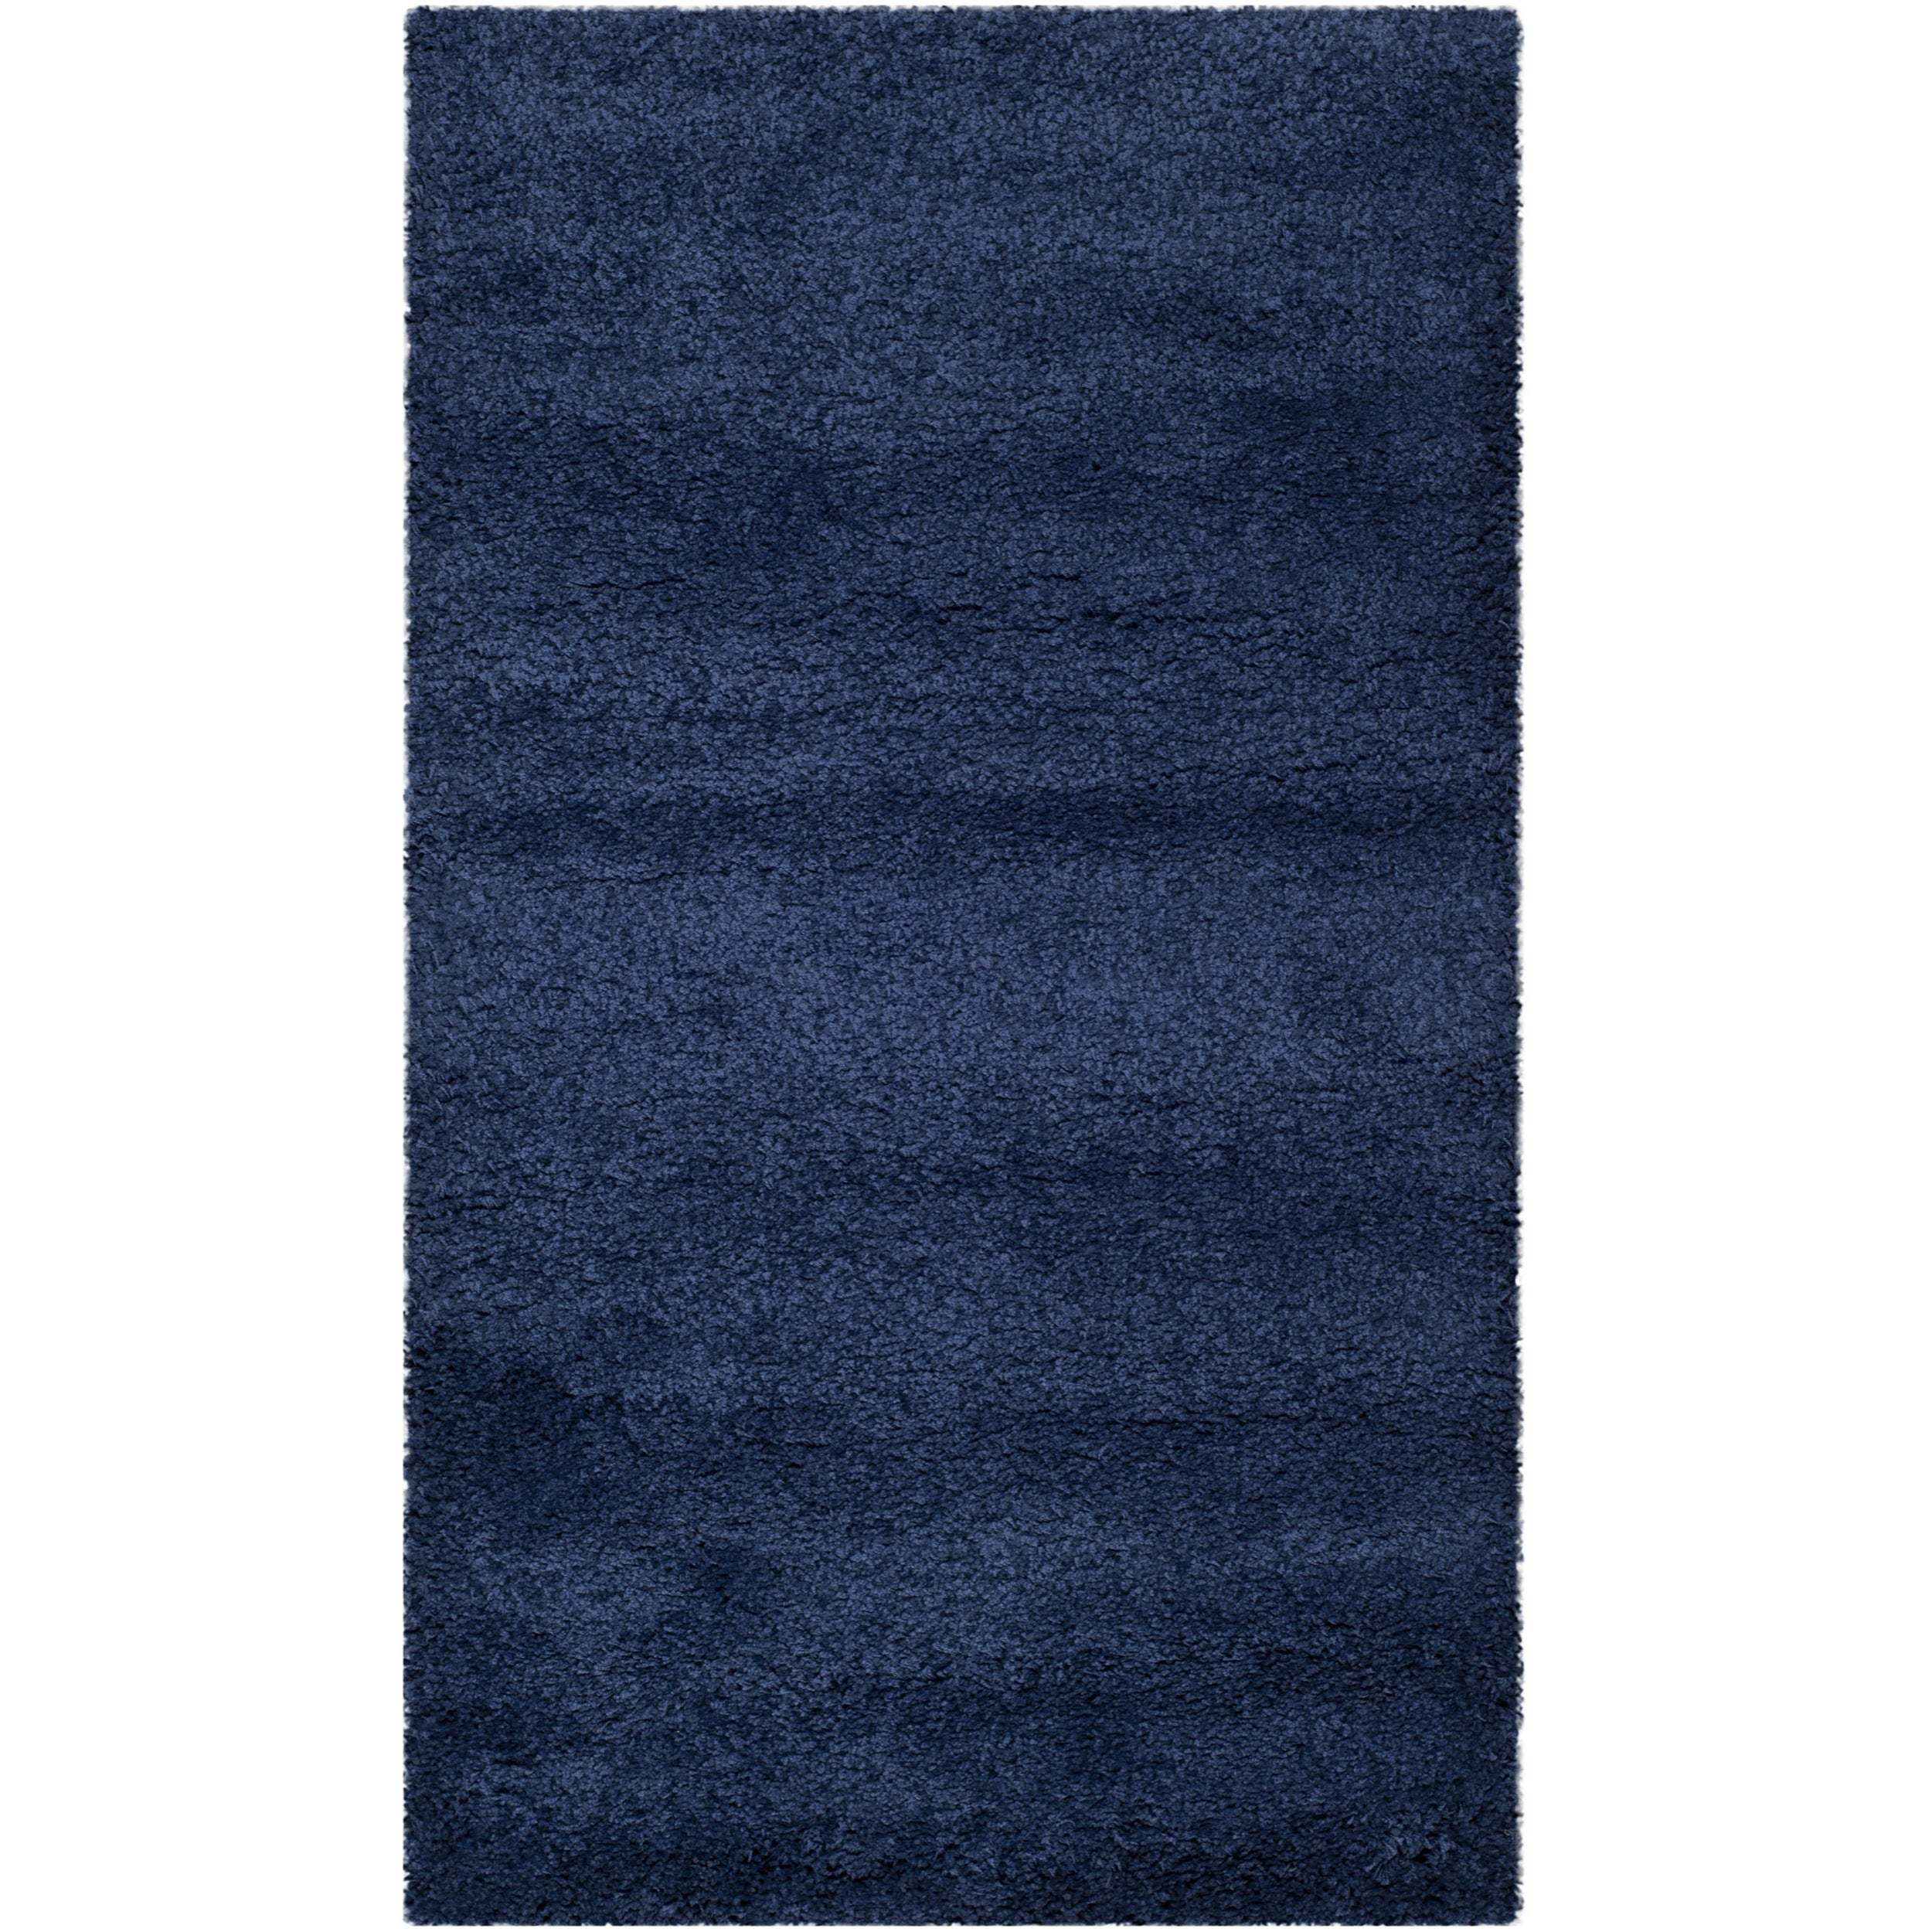 rug navy blue handmade rugs collection collectionsview cfm oriental woven collections area